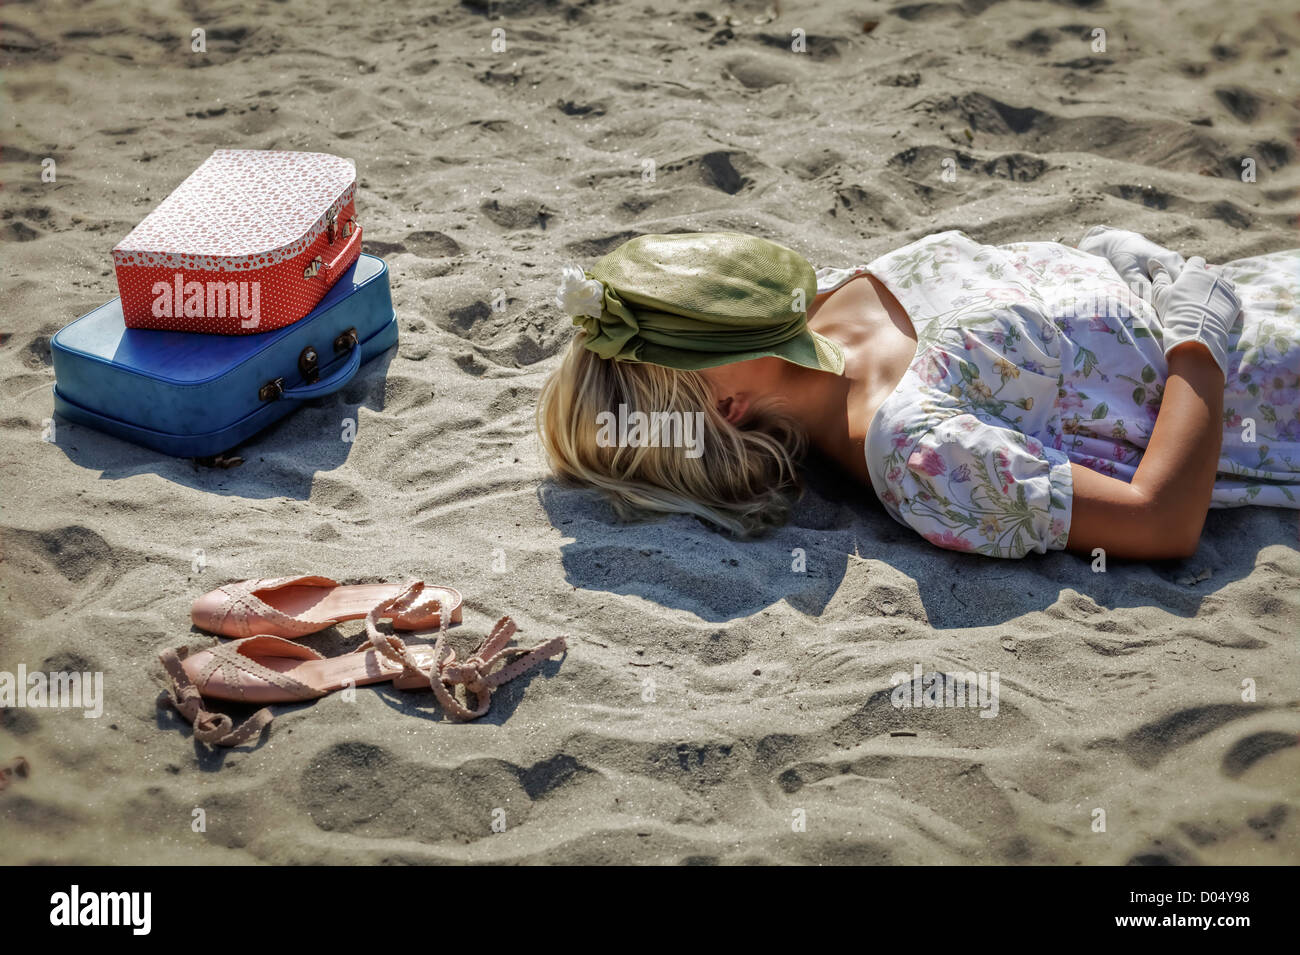 a woman in a floral dress is lying on a beach next to her shoes and two vintage suitcases - Stock Image